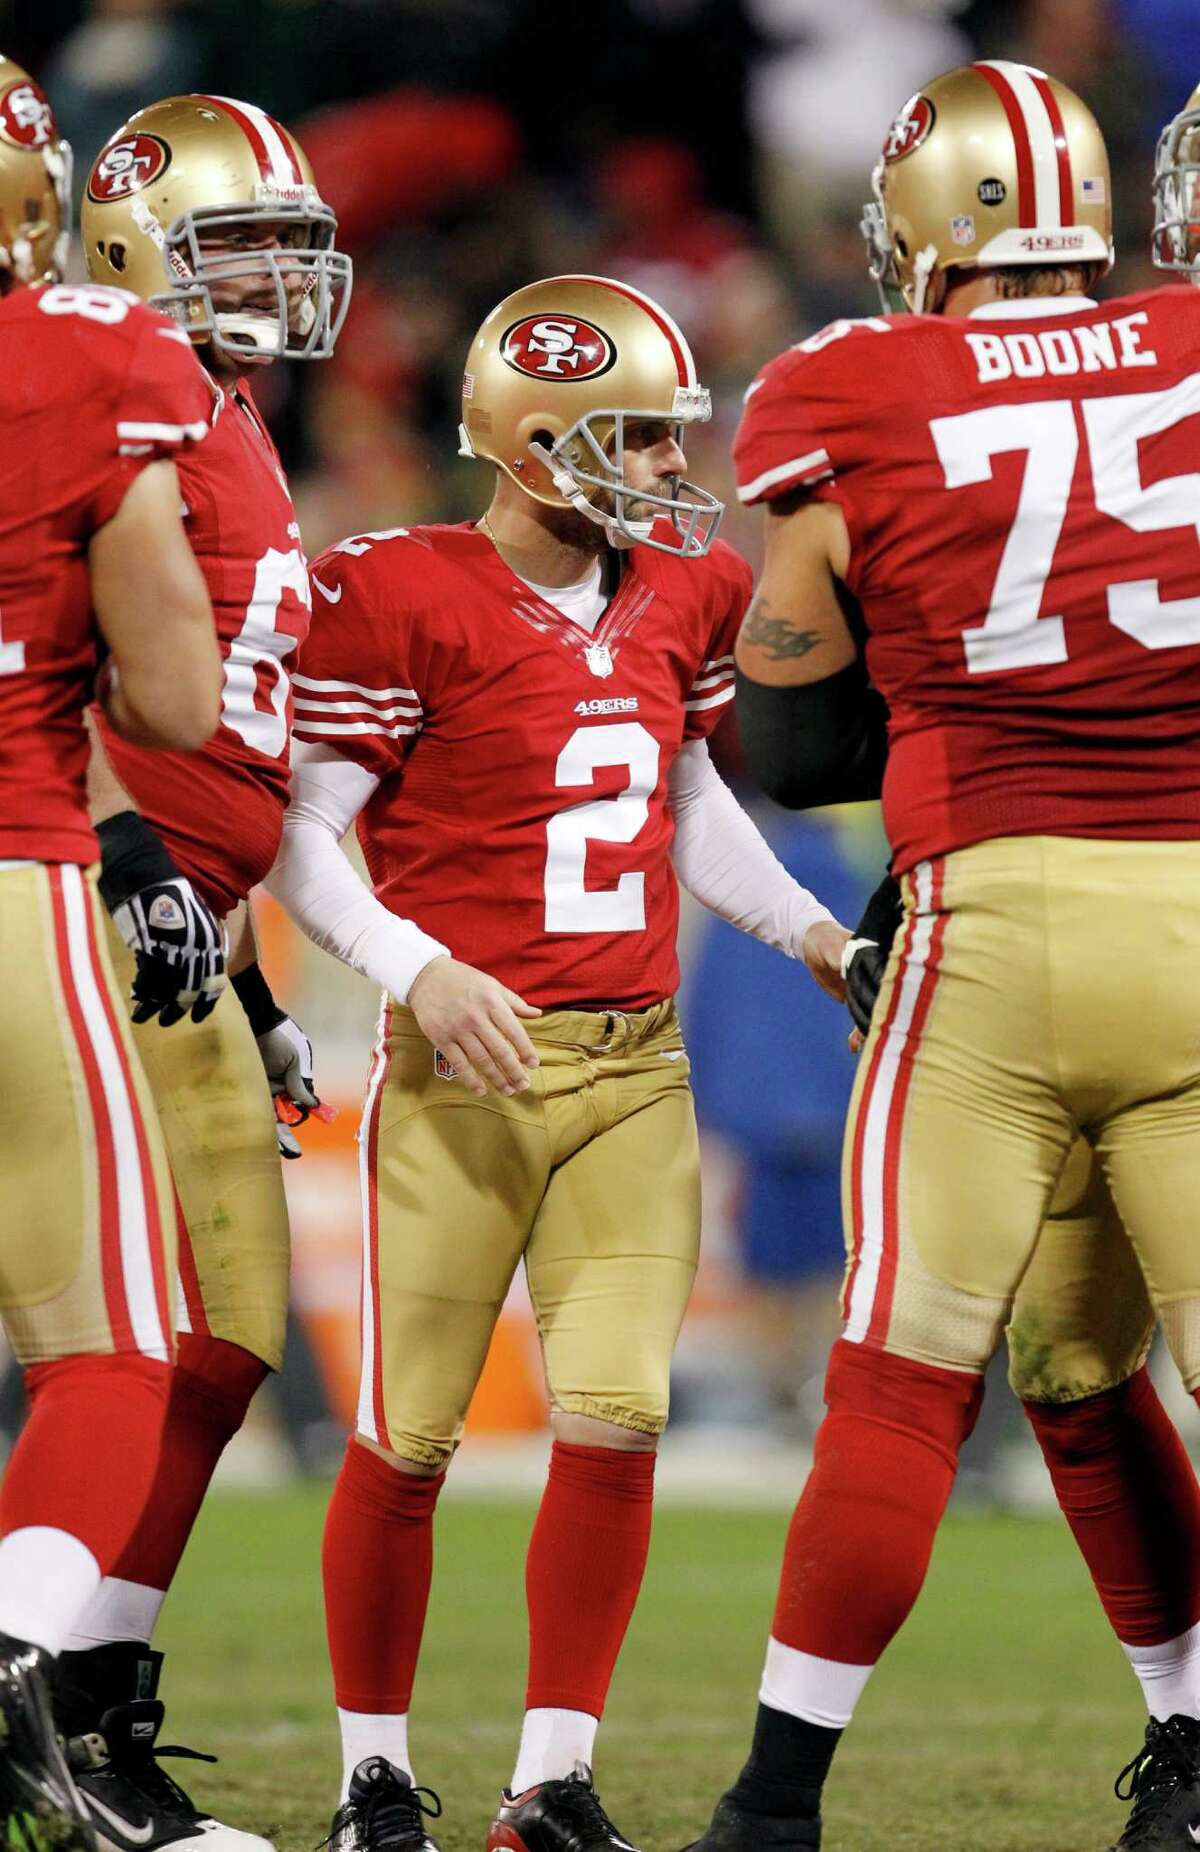 San Francisco 49ers place kicker David Akers (2) is seen after kicking a 36-yard field goal during the second quarter of an NFC divisional playoff NFL football game against the Green Bay Packers in San Francisco, Saturday, Jan. 12, 2013. (AP Photo/Tony Avelar)